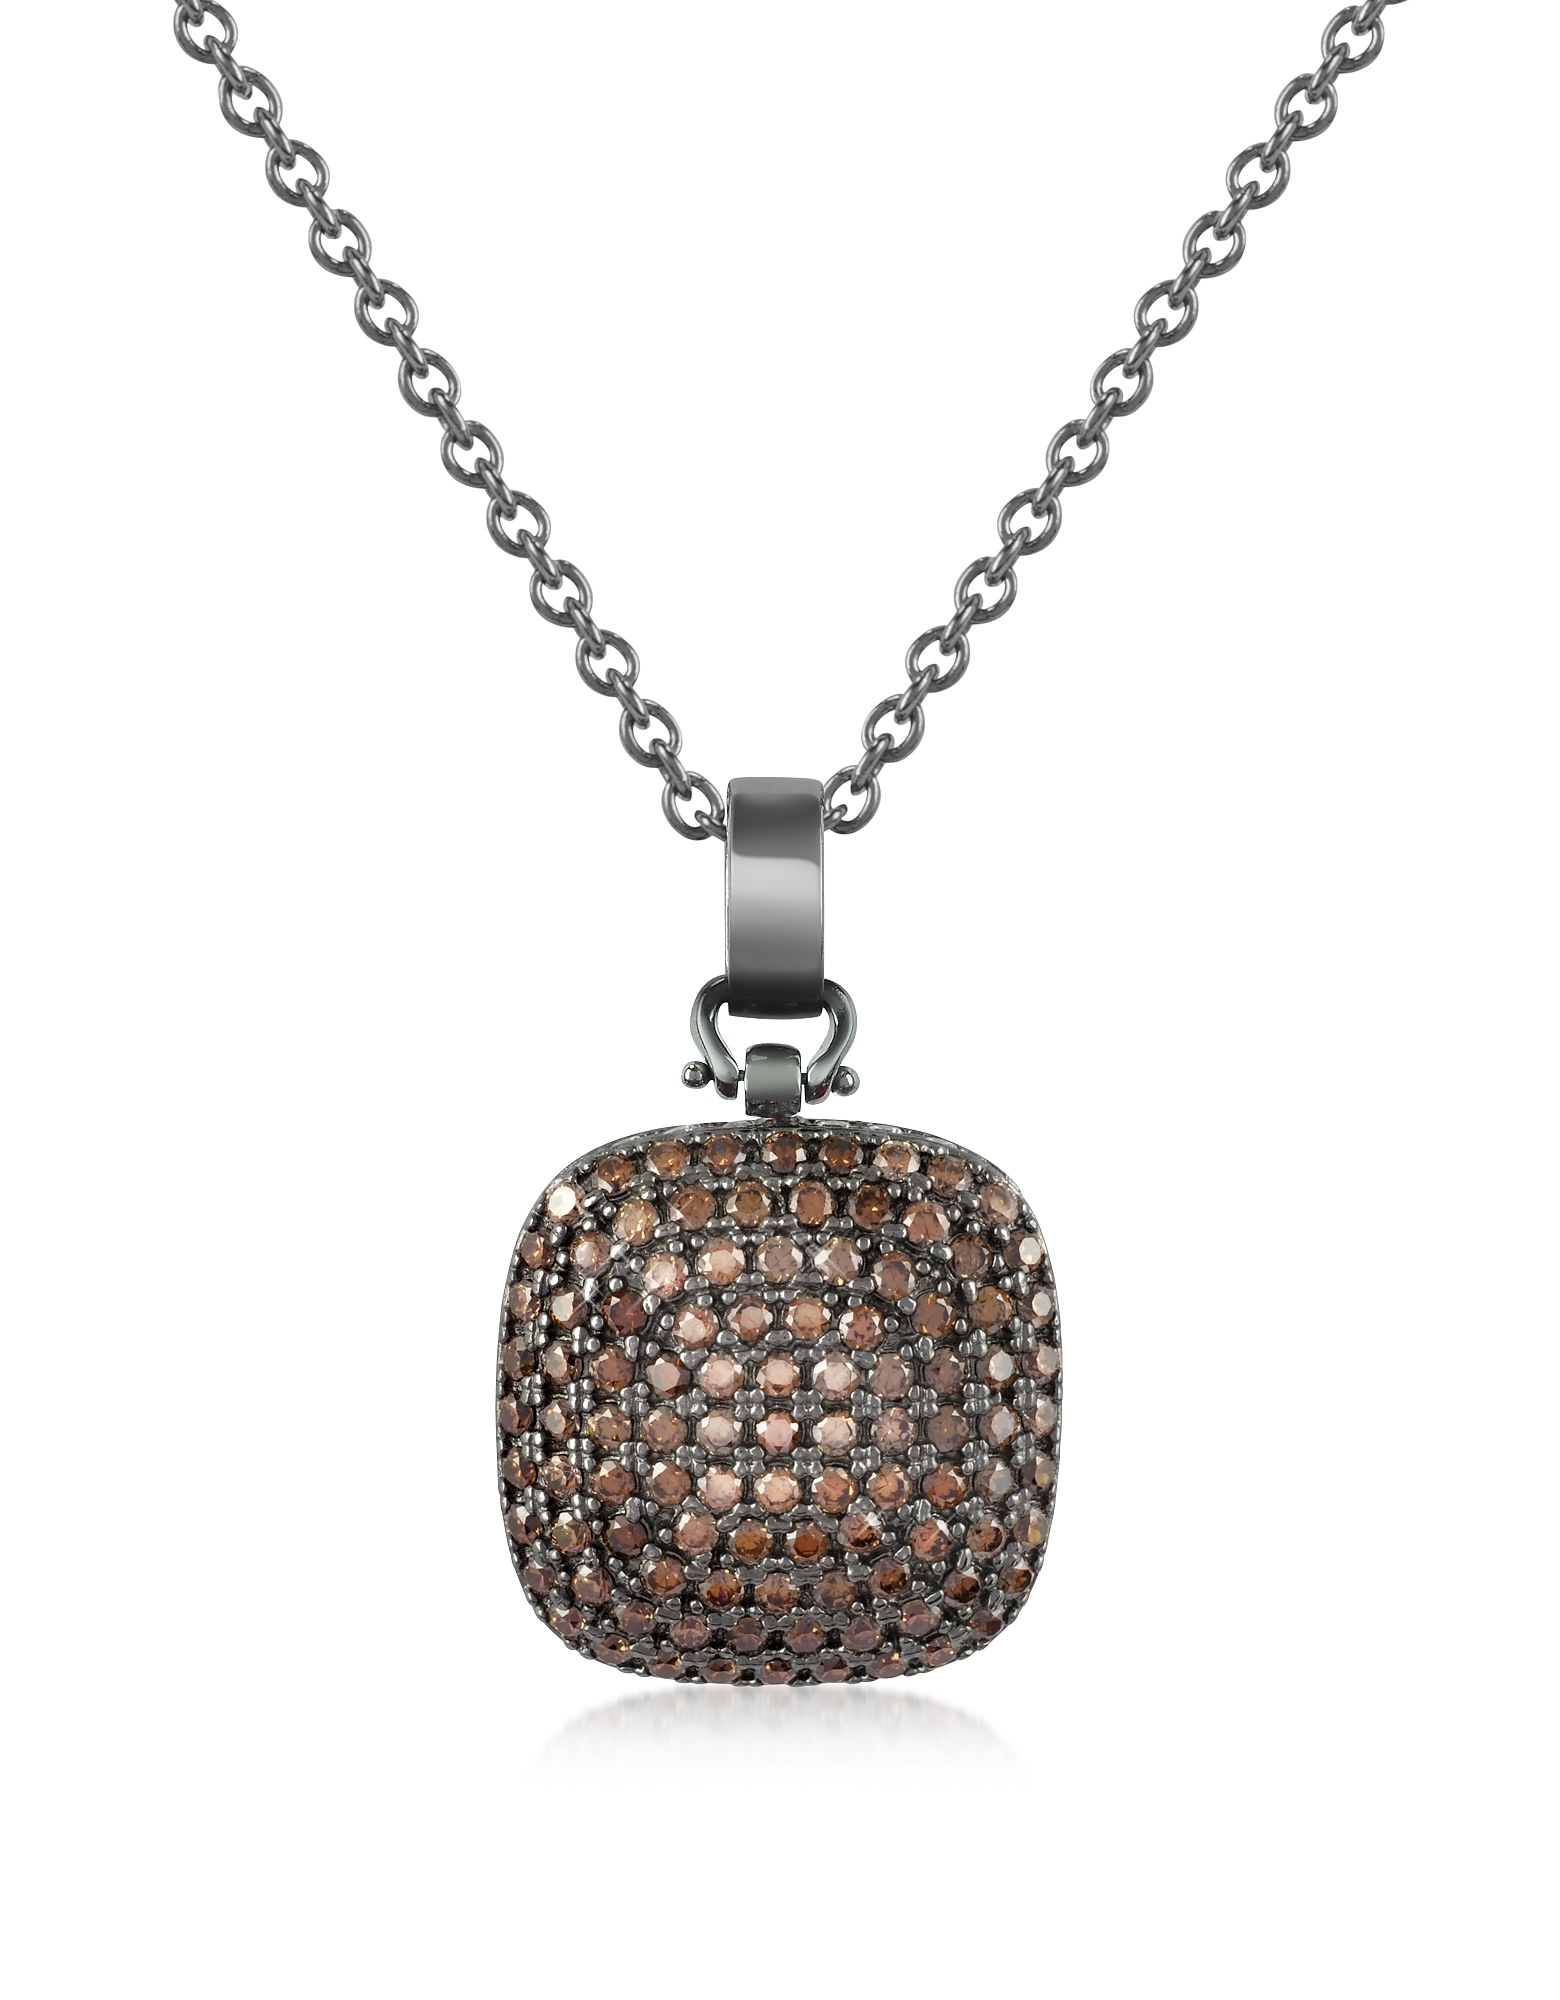 Azhar Necklaces, Cubic Zirconia and Sterling Silver Square Pendant Necklace